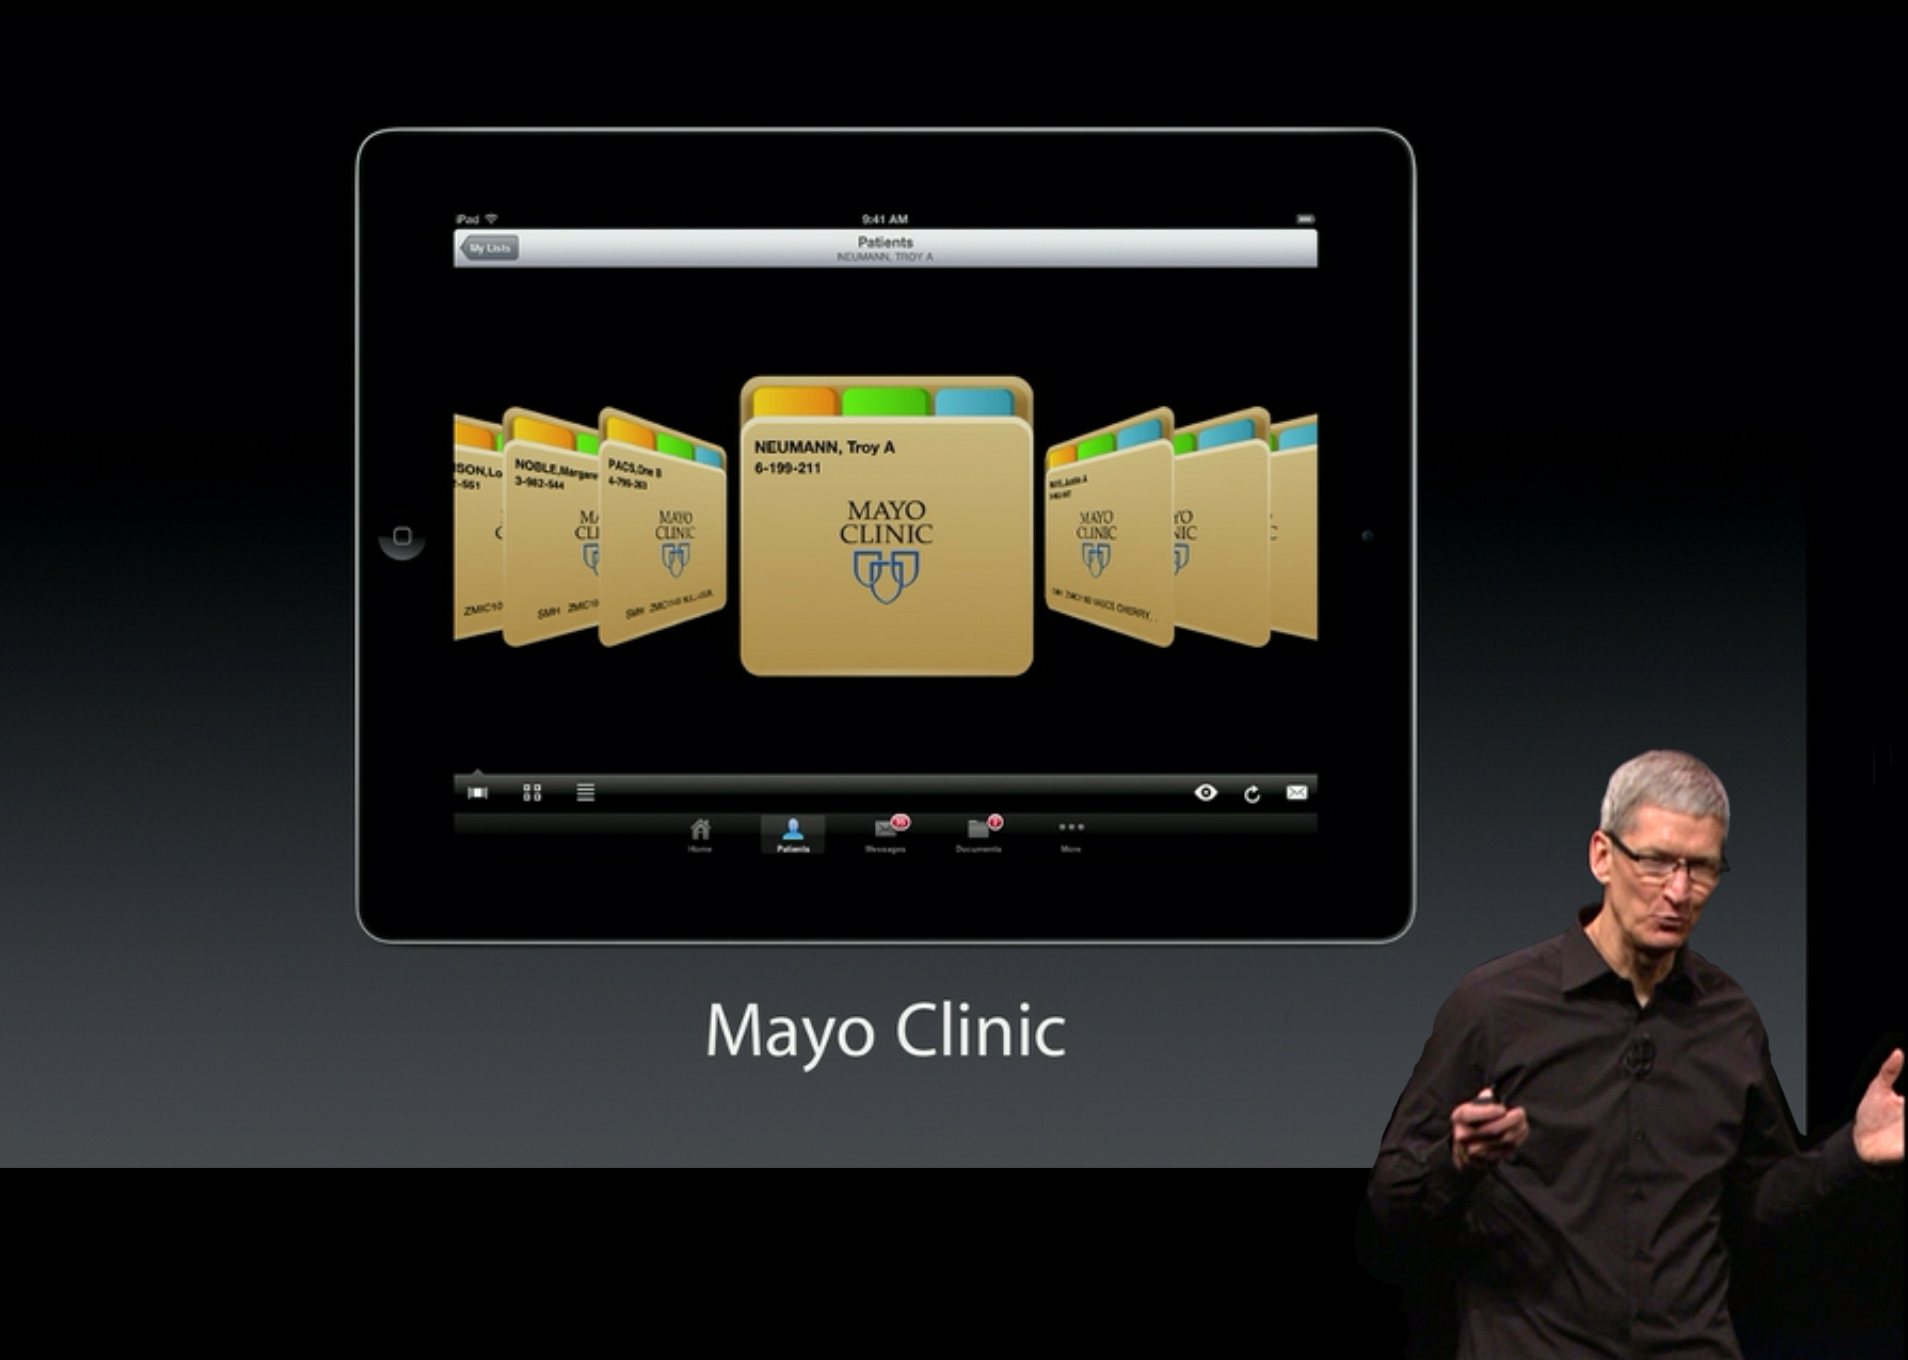 MayoClinic_AppleKeynote_091212